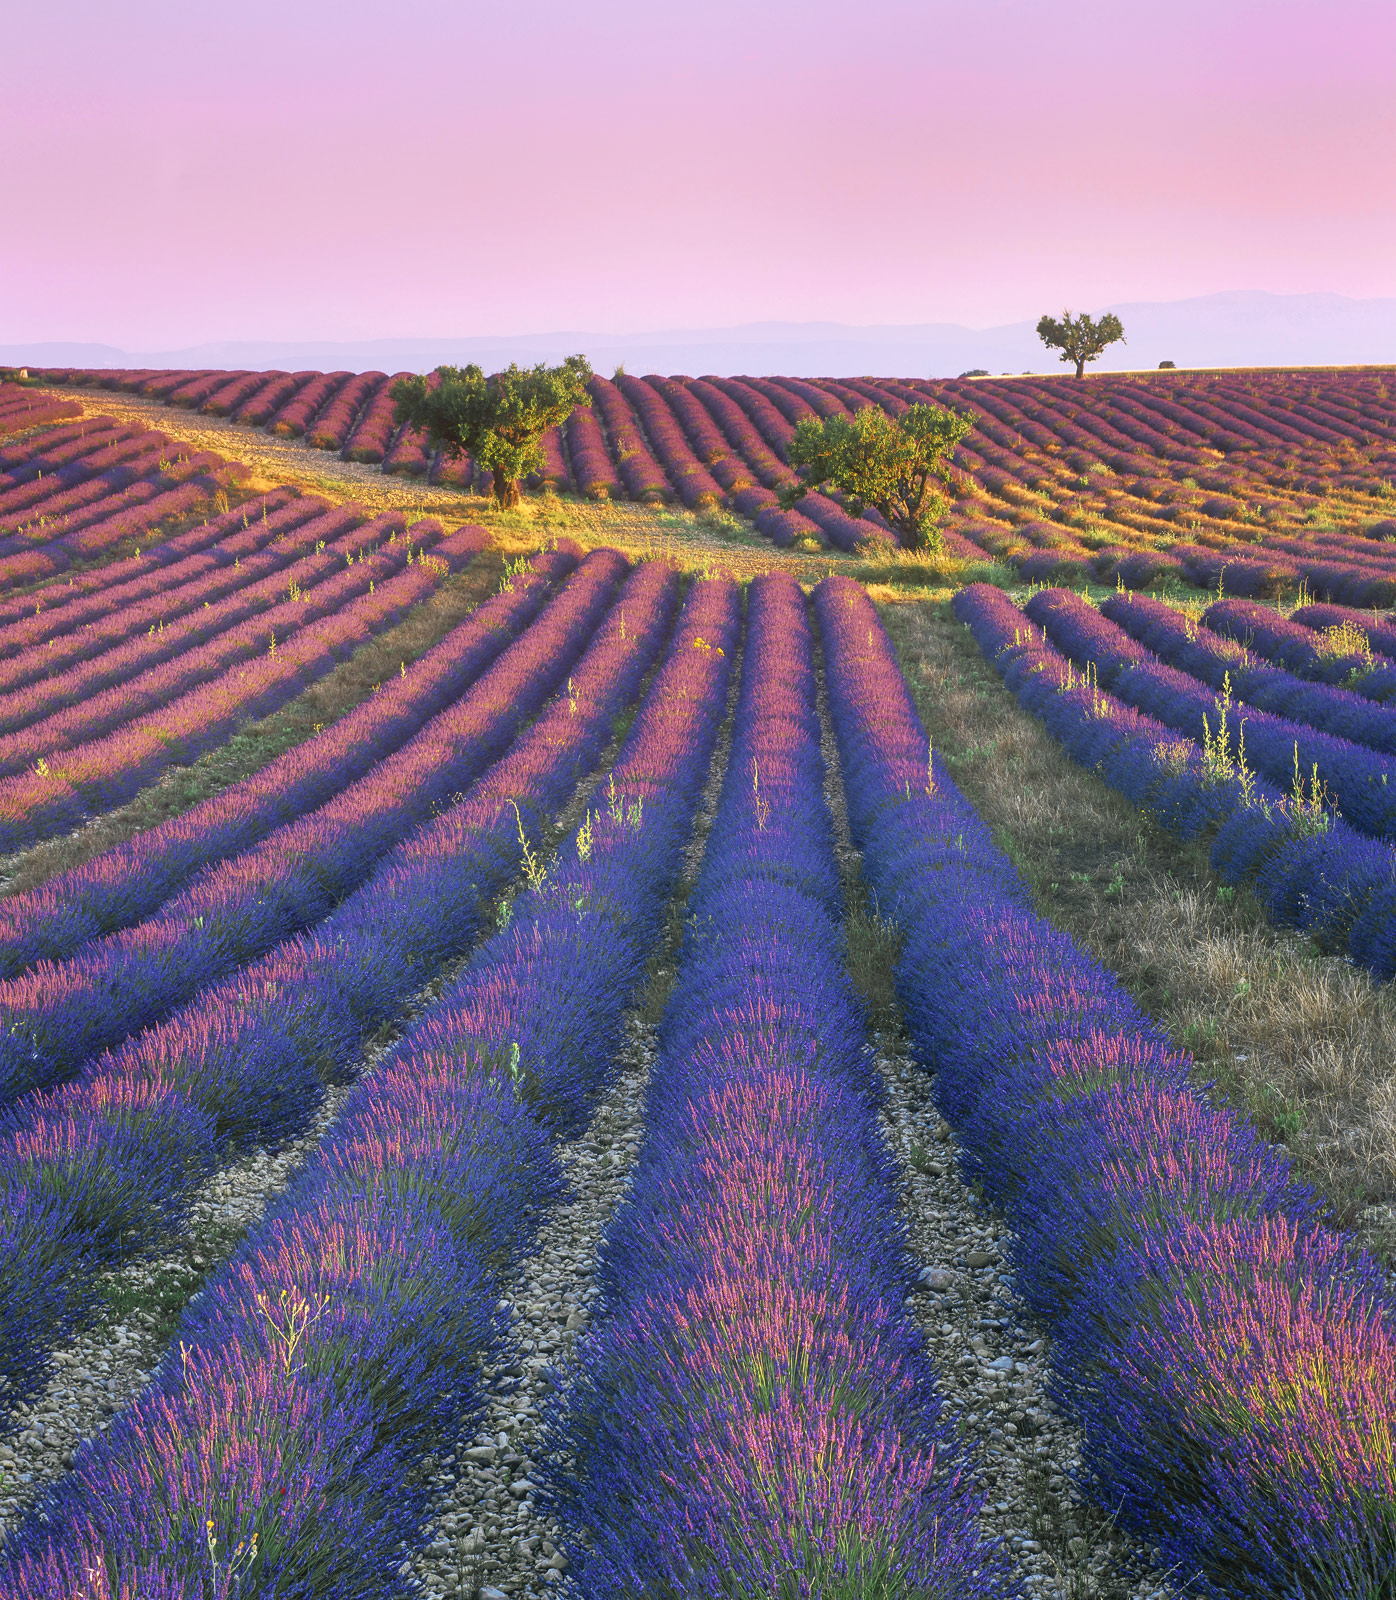 Some of the lavender fields on the high plateaus were simply huge this one seemed to go on for ever and a relatively high viewpoint...